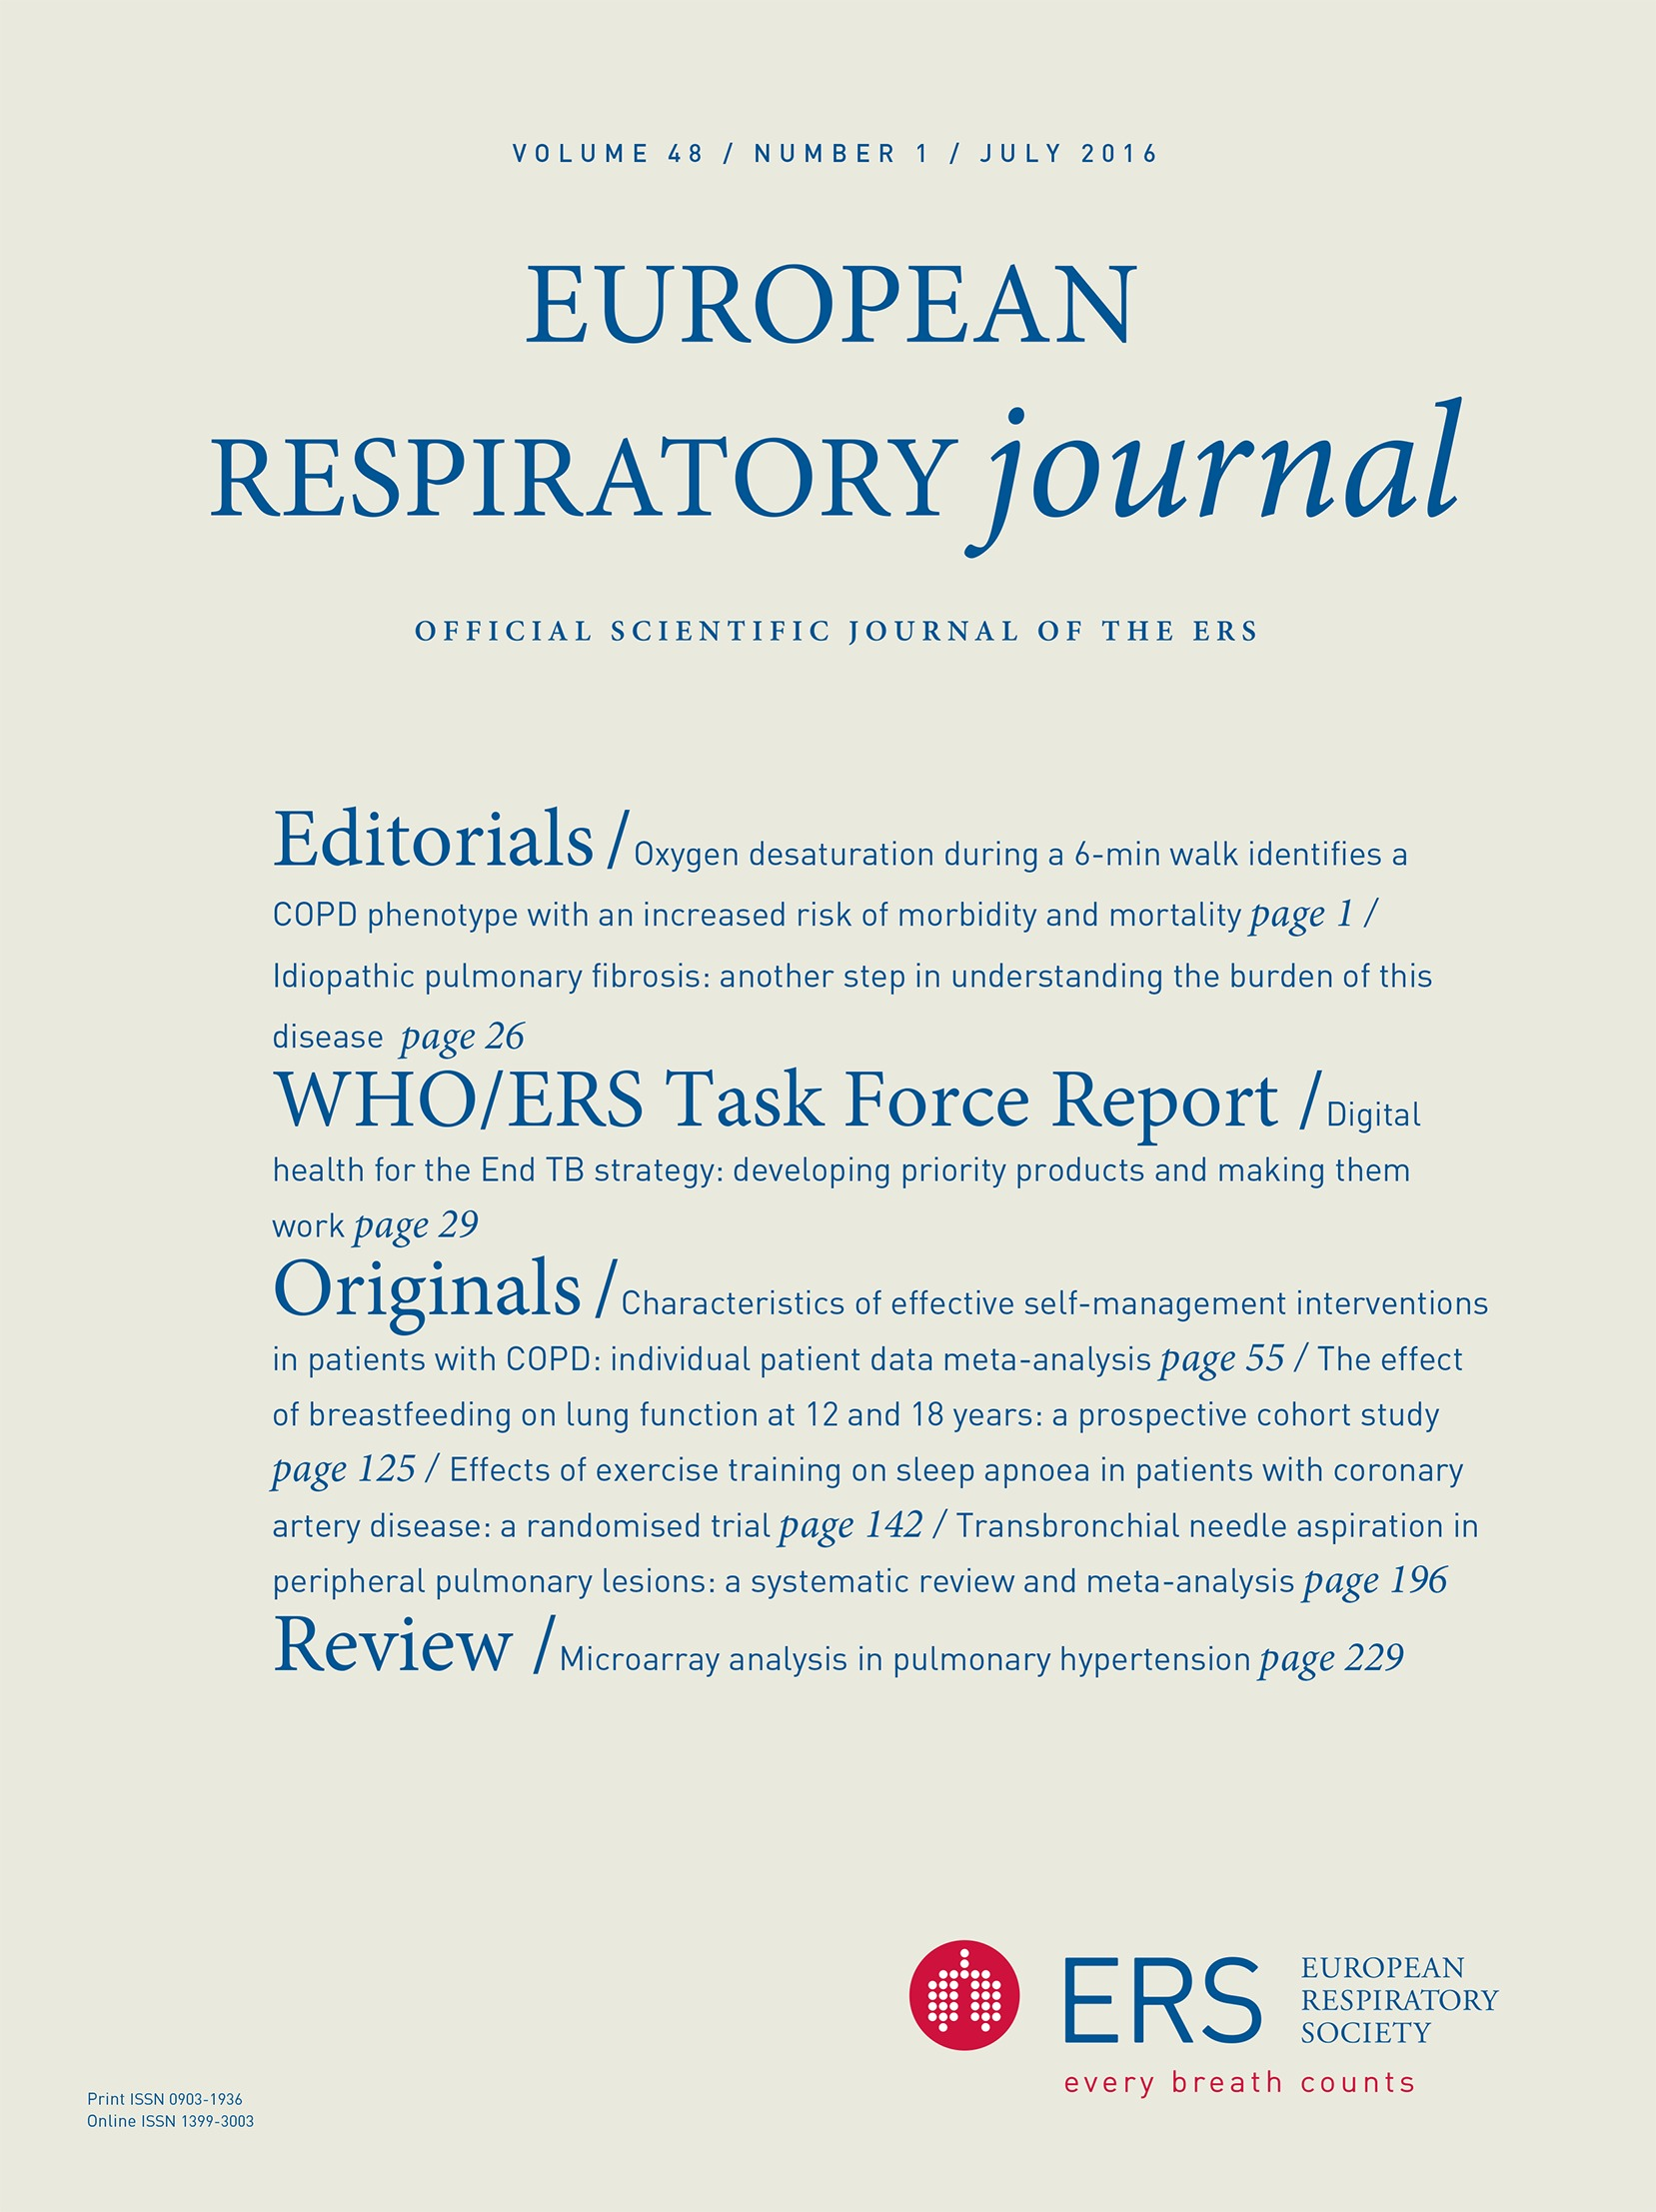 Supported self-management for COPD: making progress, but